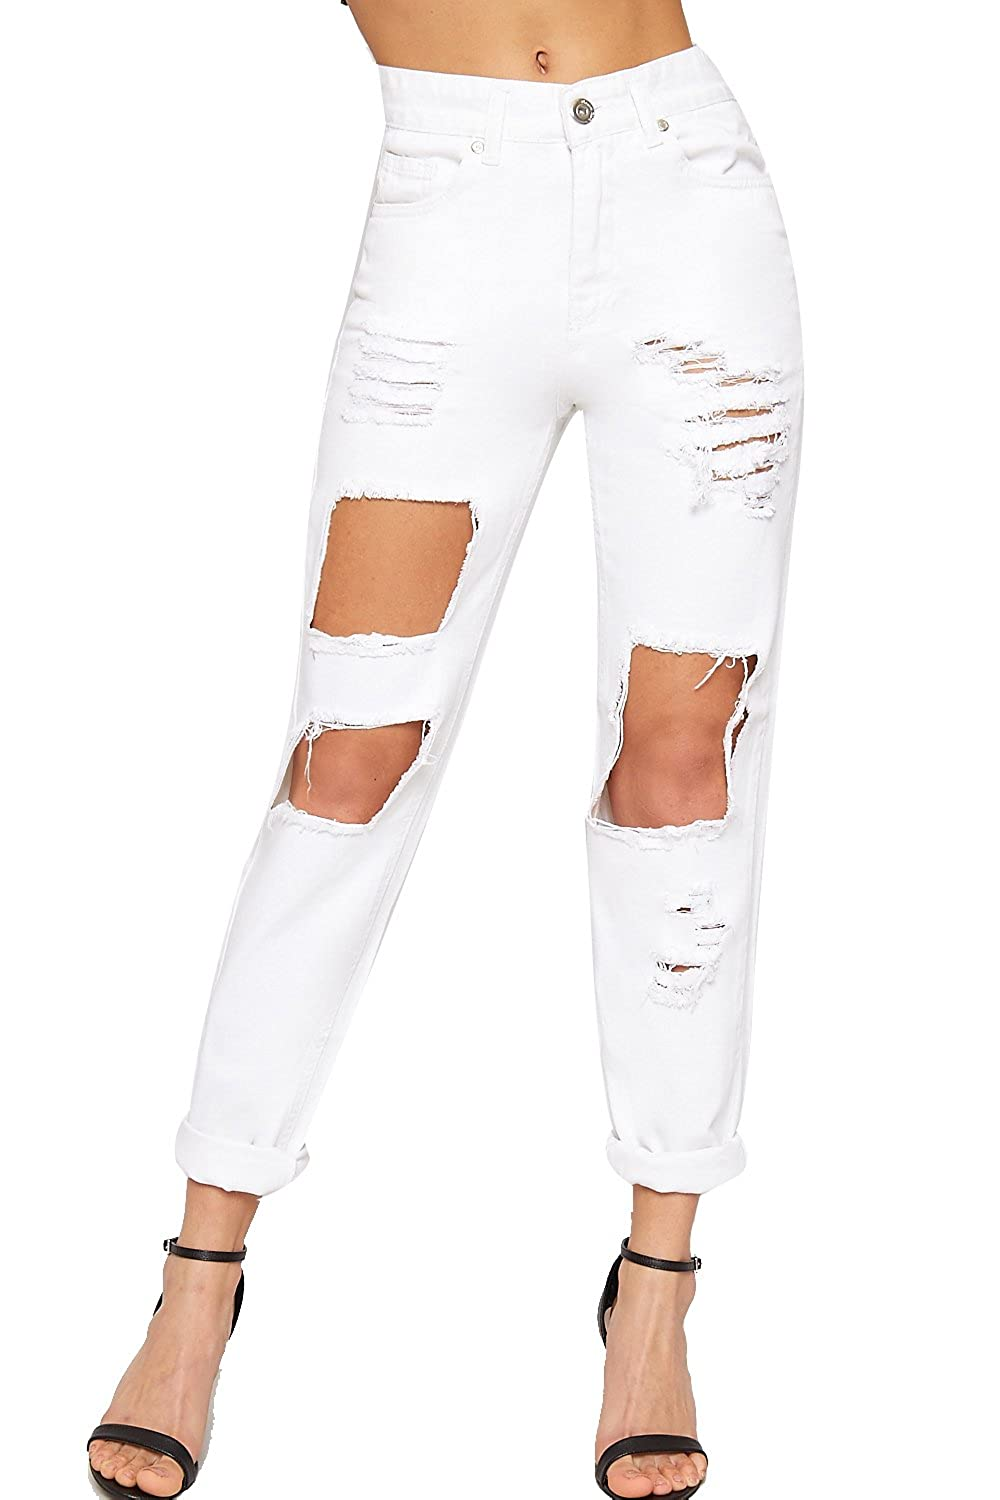 Wear All Women's High Waisted Extreme Ripped Distressed Mom Jeans Pants Trousers by Wear All